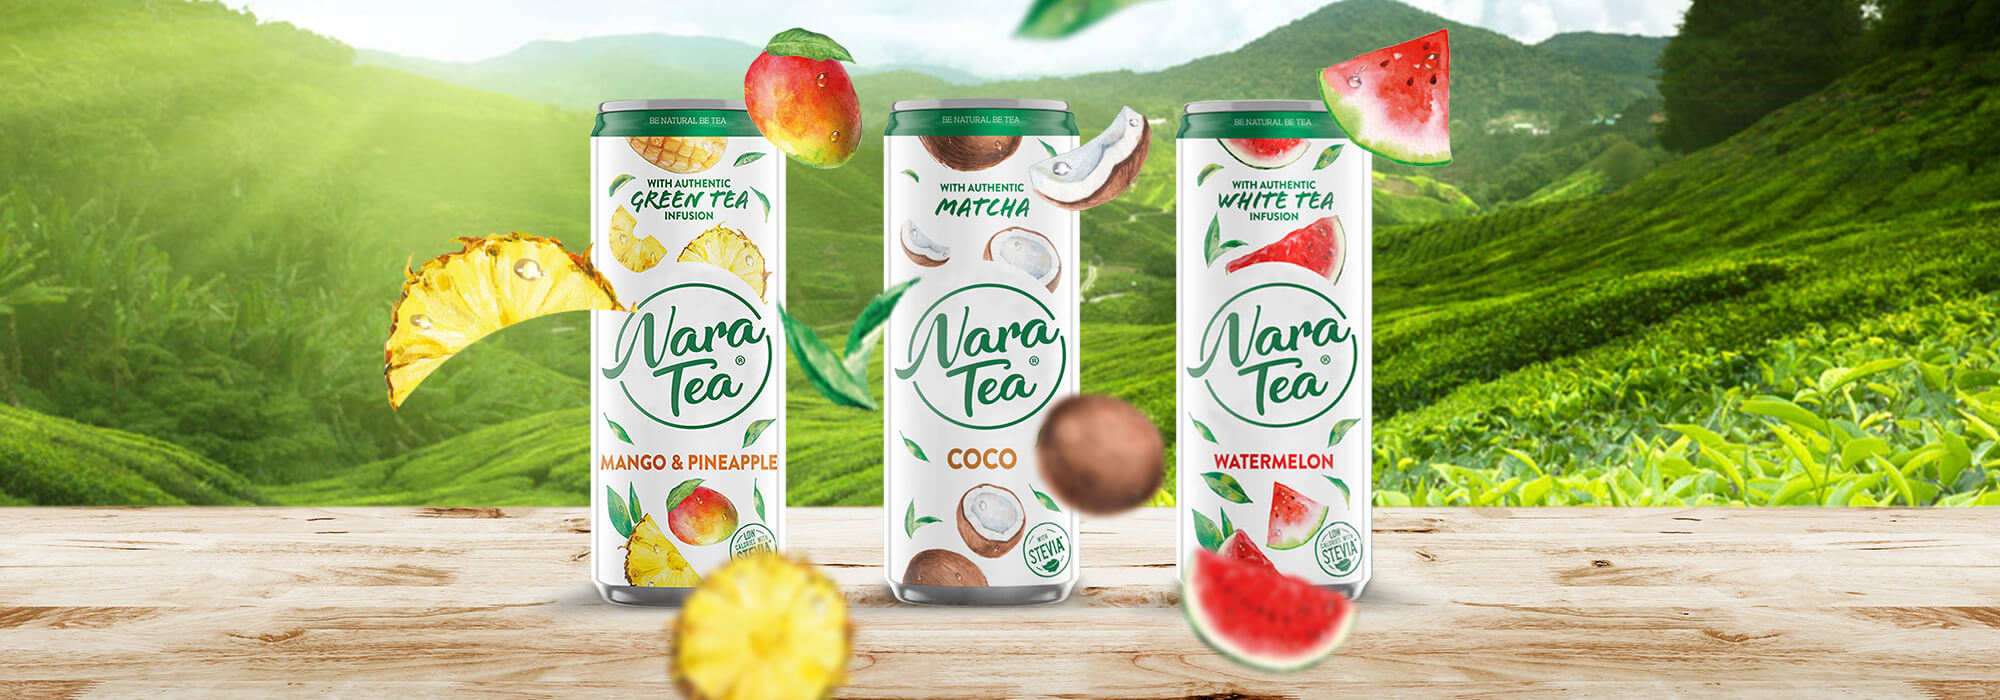 Nara Tea online marketing kampány - Nine Company